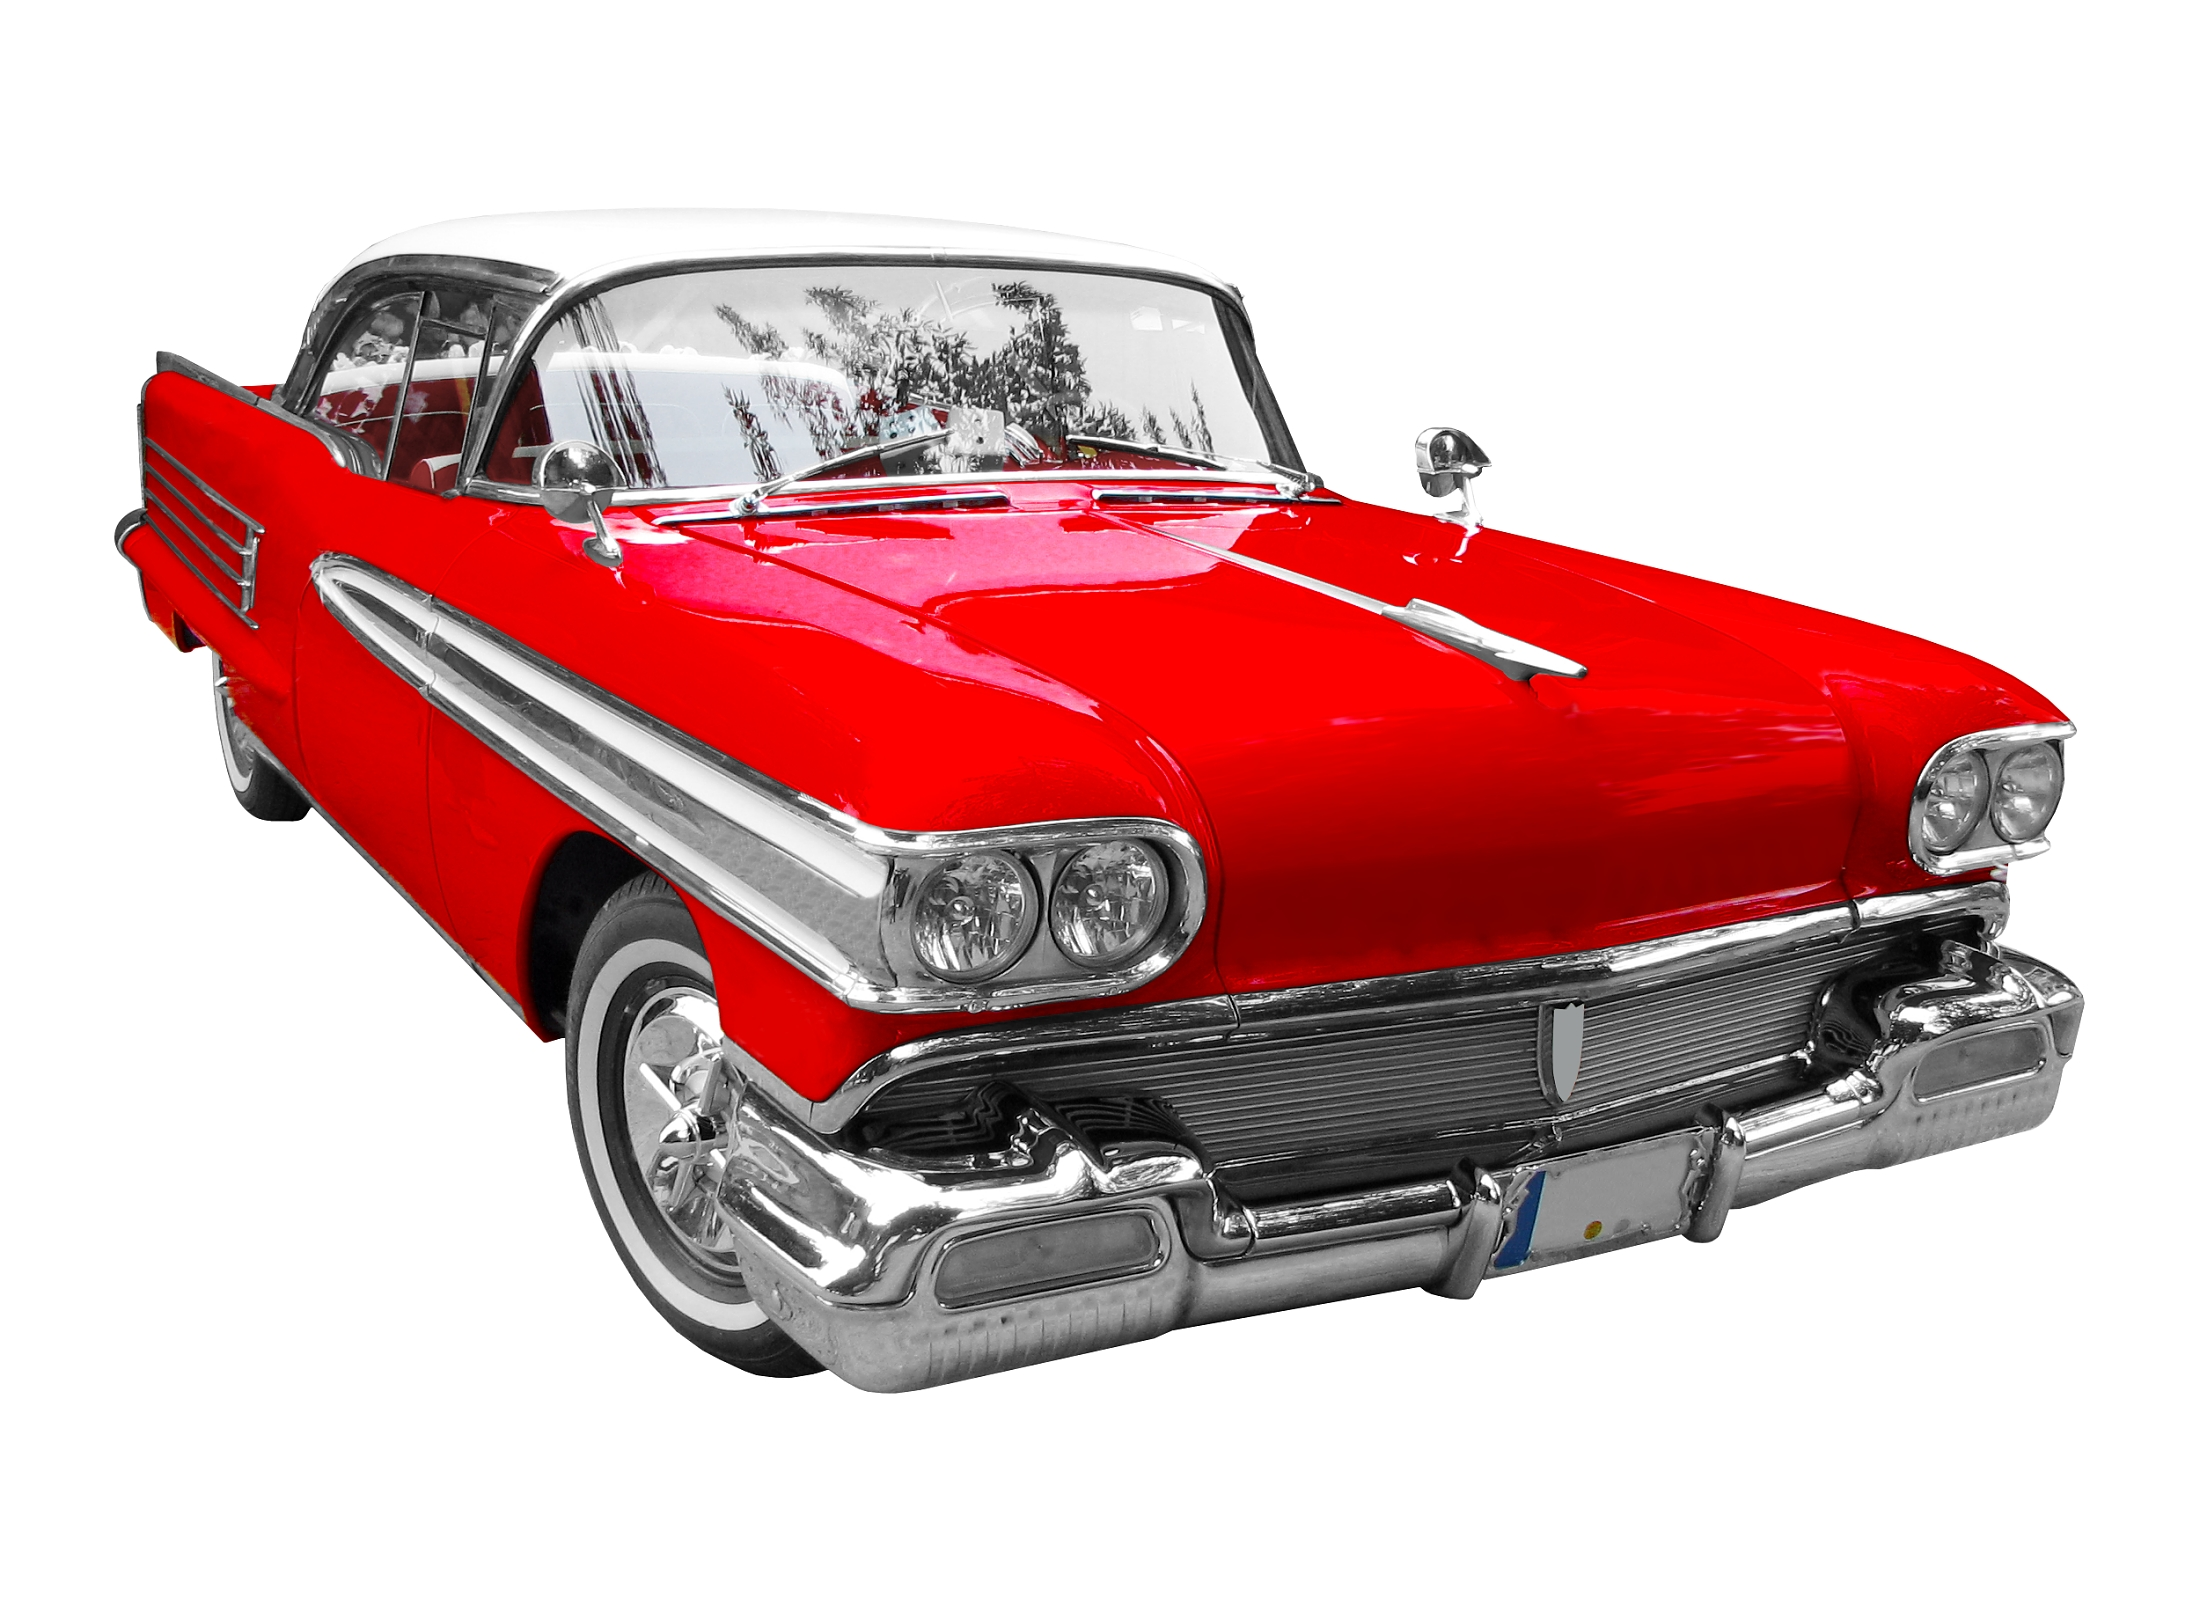 High resolution car clipart picture royalty free download Car clipart high resolution - ClipartFest picture royalty free download